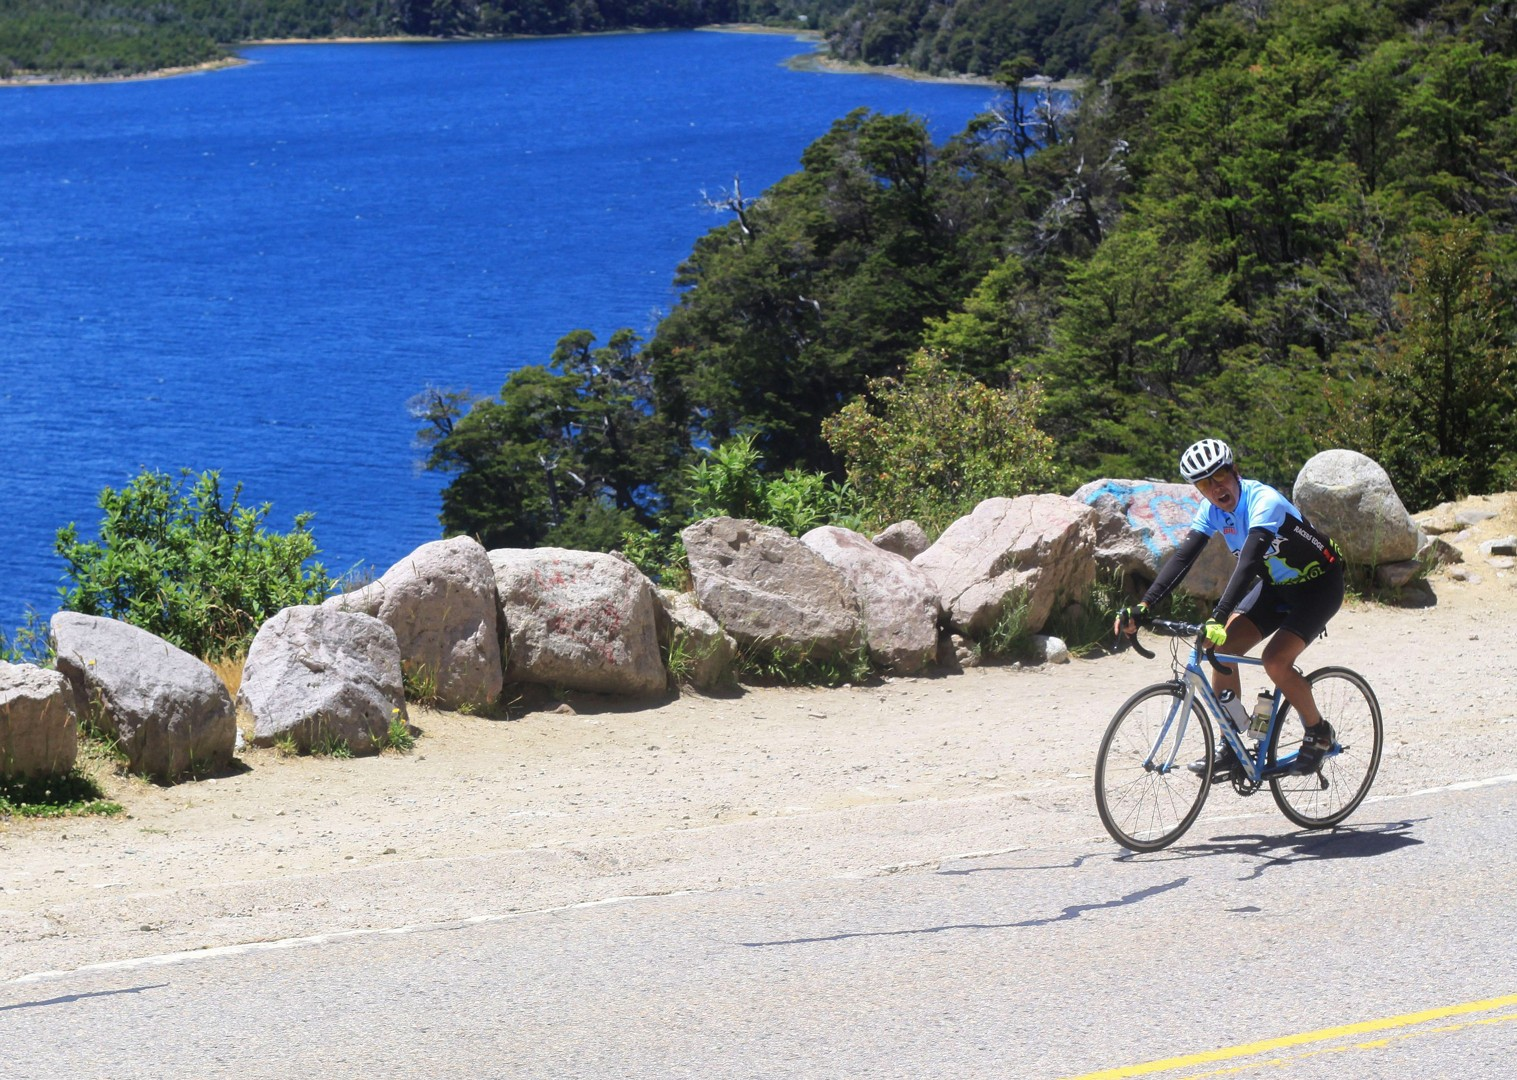 volcan-osorno-guided-road-cycling-holiday-lake-district-explorer-chile-and-argentina.jpg - Chile and Argentina - Lake District Road Explorer - Road Cycling